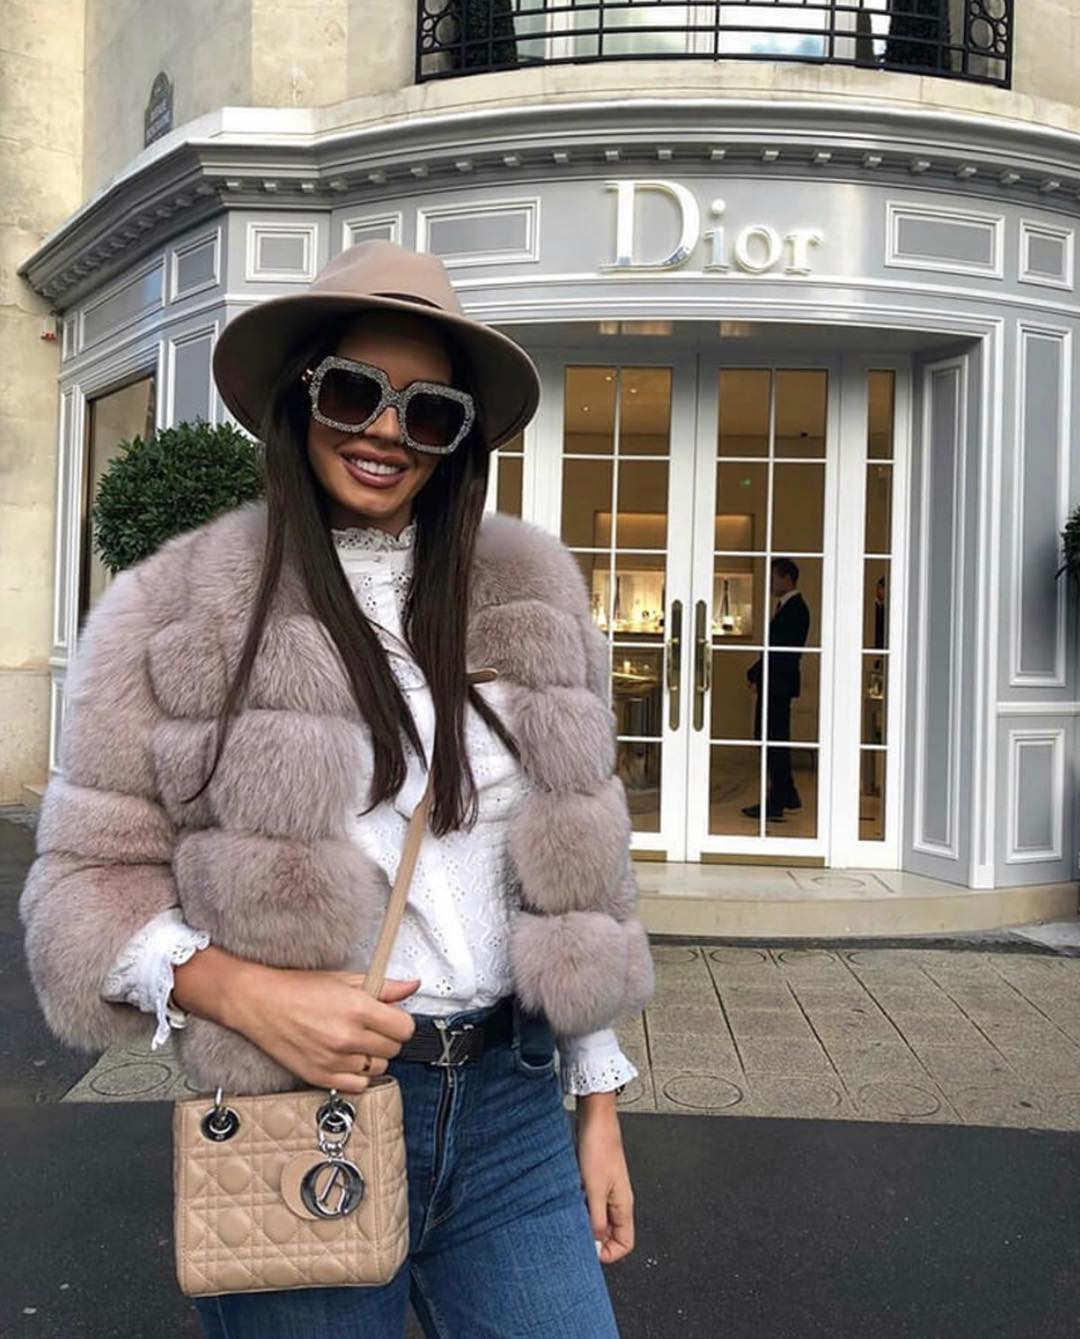 Fur Jacket, Oversized Shades, Fedora Hat And Denim For Street Chic Look 2020